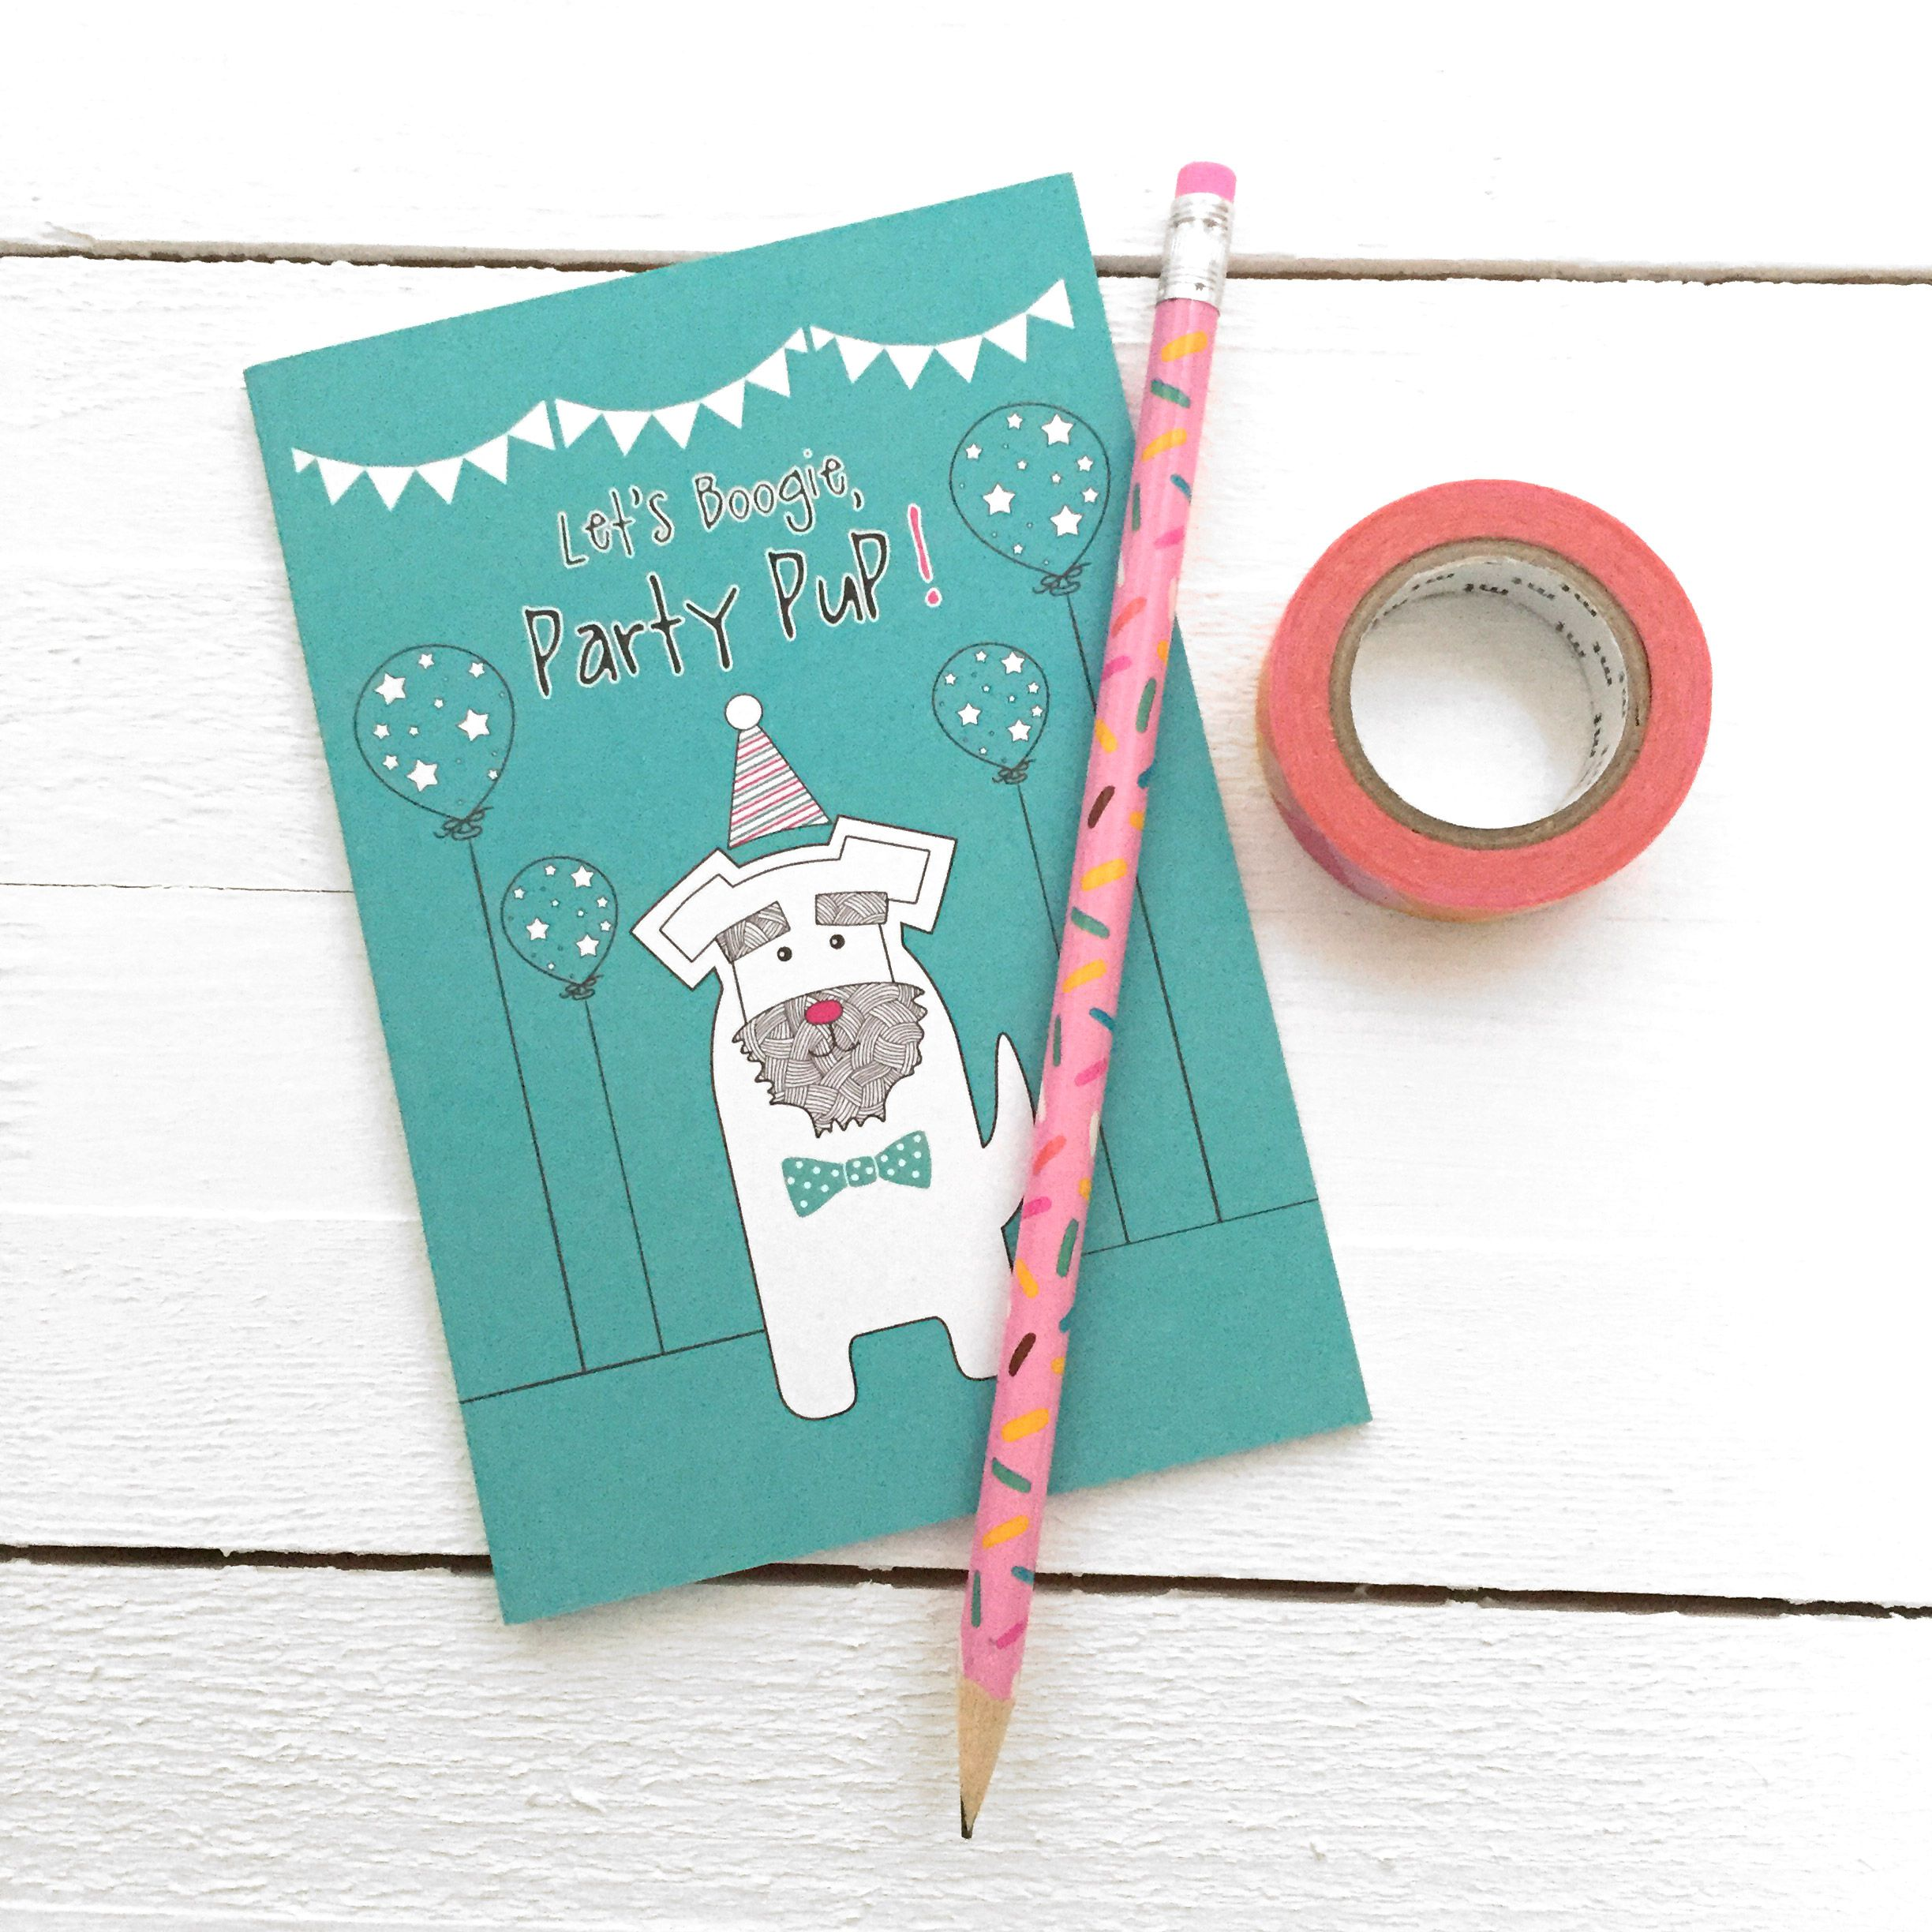 This incredibly cute dog notebook is printed in the UK on recycled paper and comes with plain pages, ready to capture your notes, doodles and daydreams. Each notebook is protected in a cellophane sleeve and will be delivered in a bubble protective mailer.